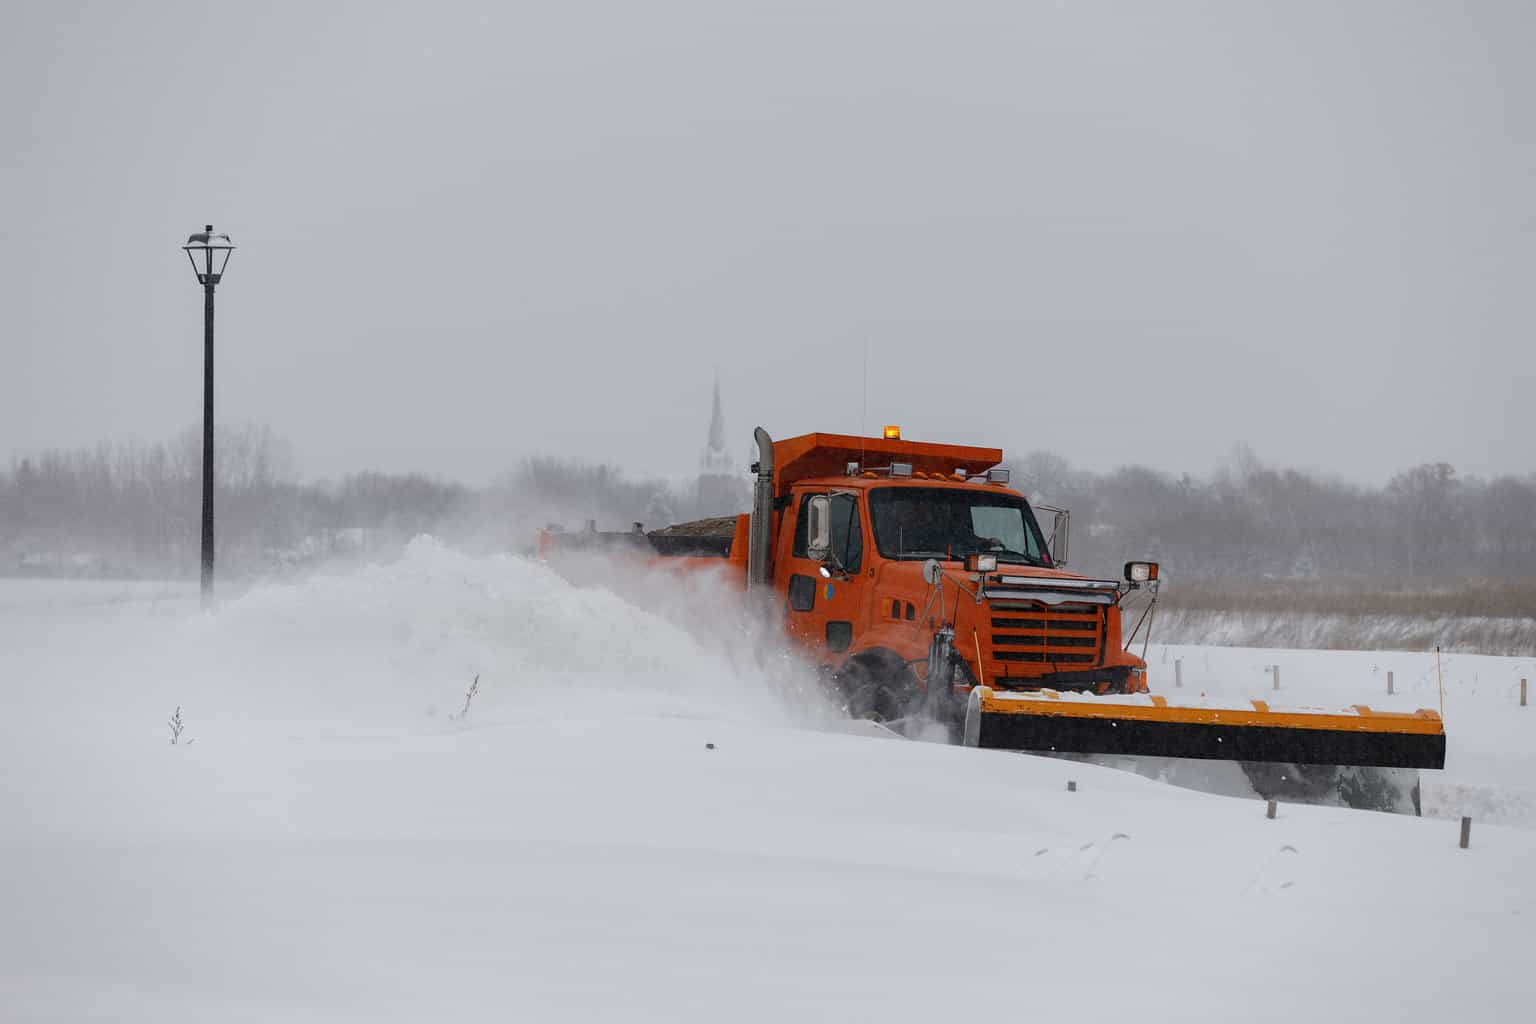 A truck stuck in a snowstorm | Photo: Shutterstock